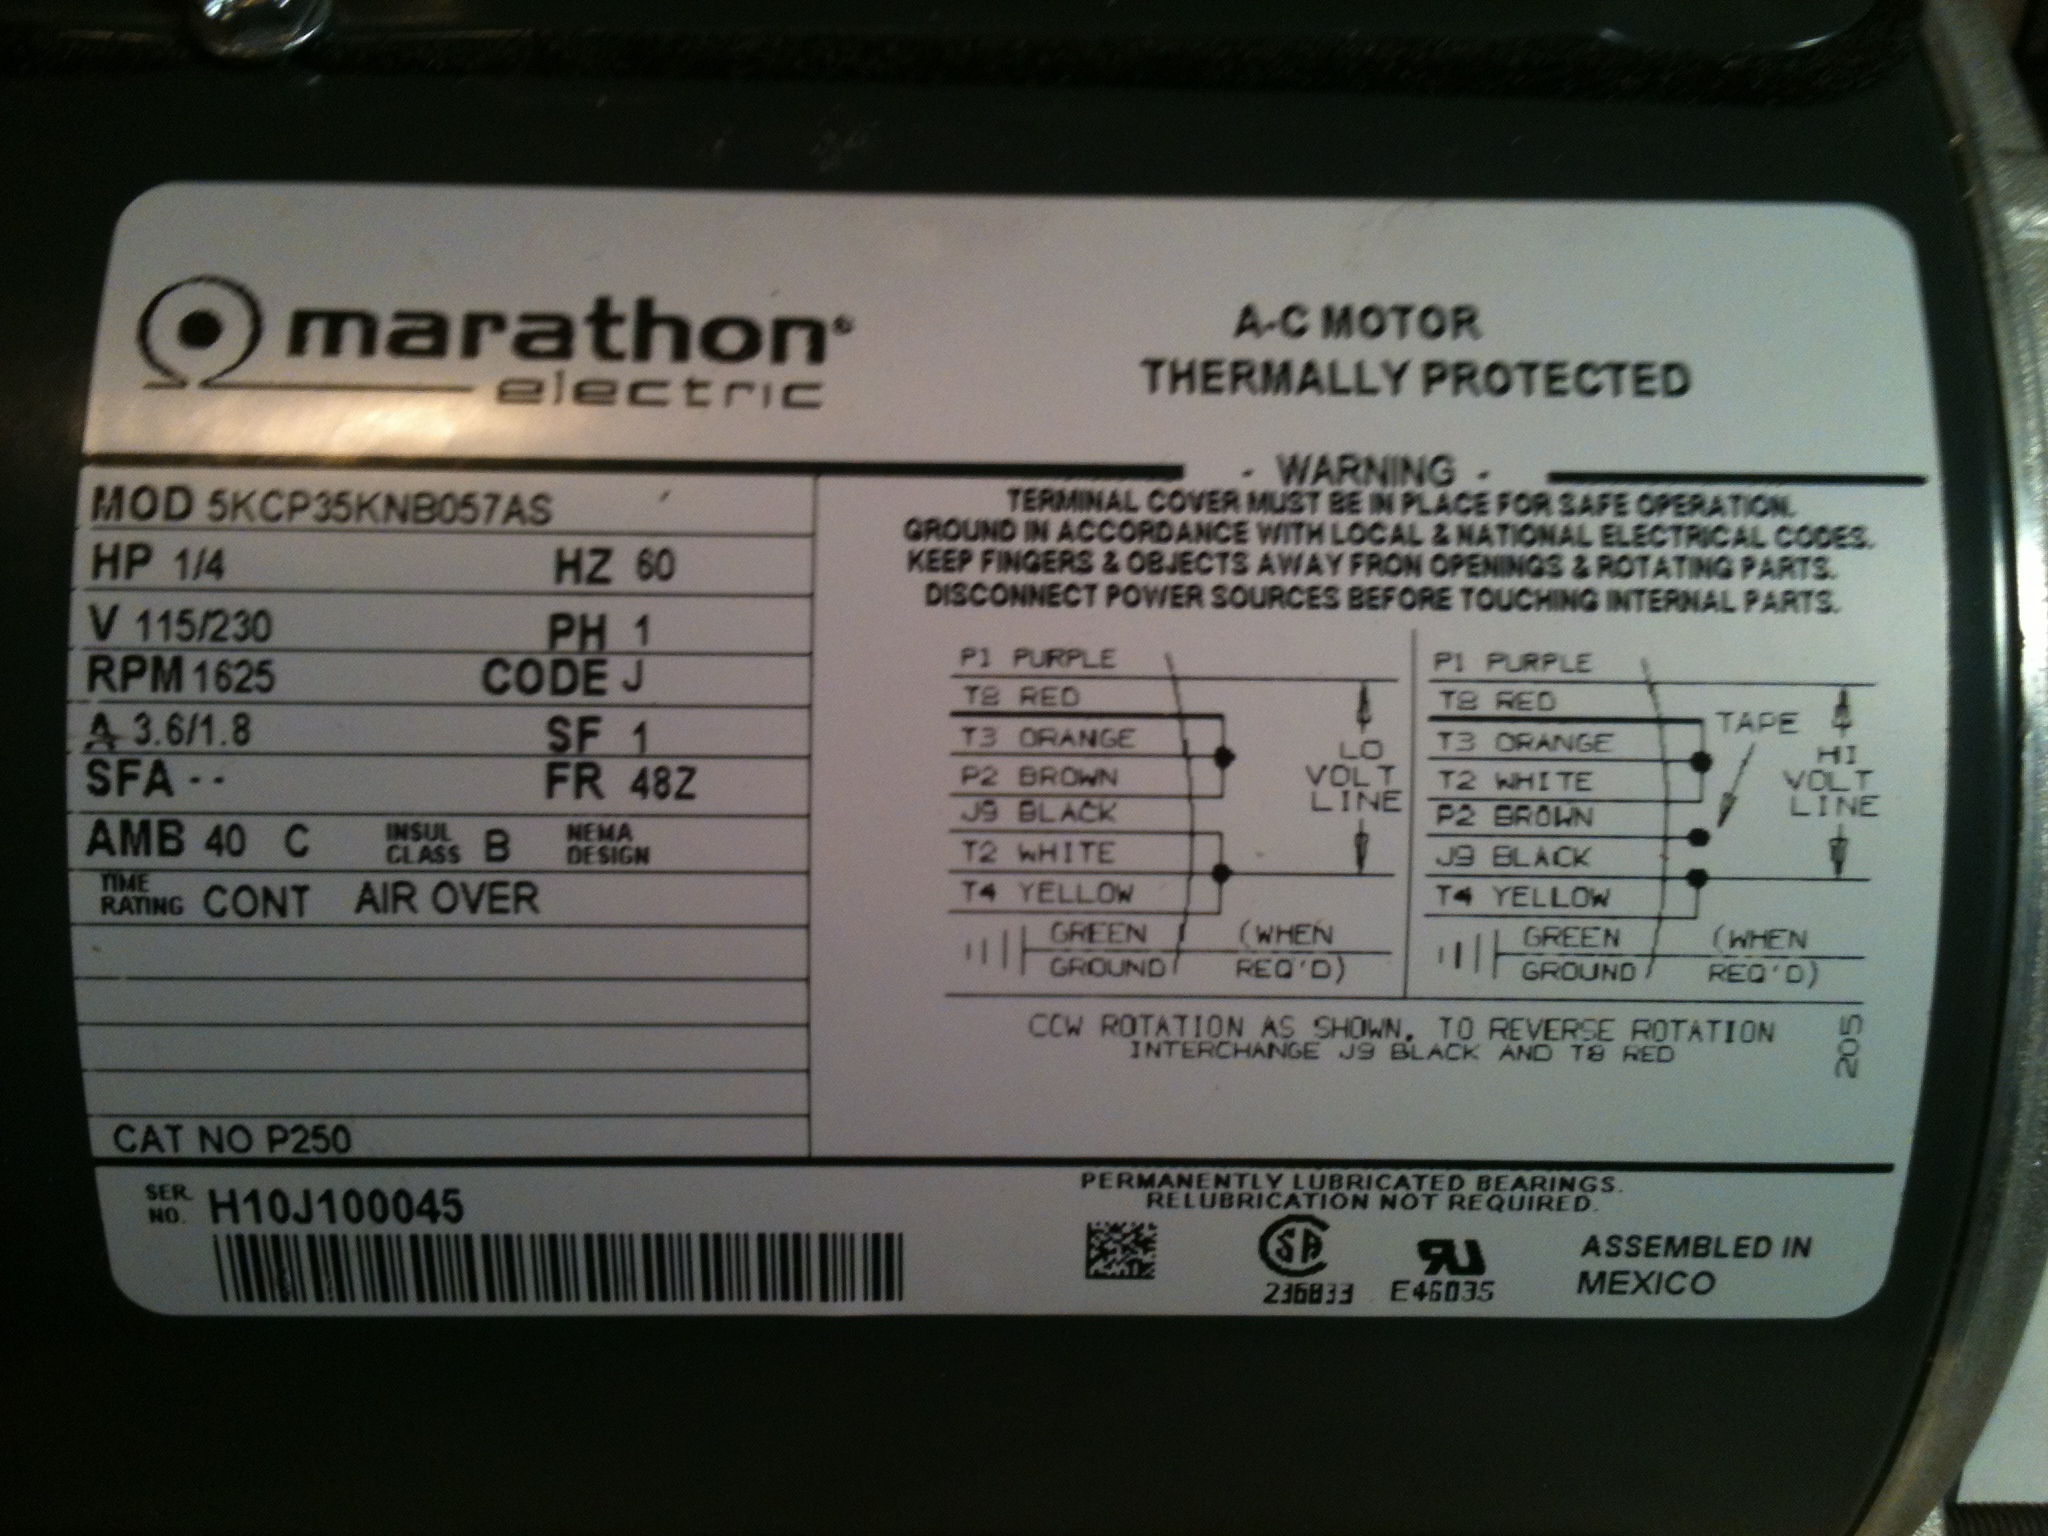 2012 01 24_021217_marathonmotor i just bought a marathon electric ac motor, hp 1 4 v 115 230 5kc49nn0061at marathon wiring diagram at gsmportal.co